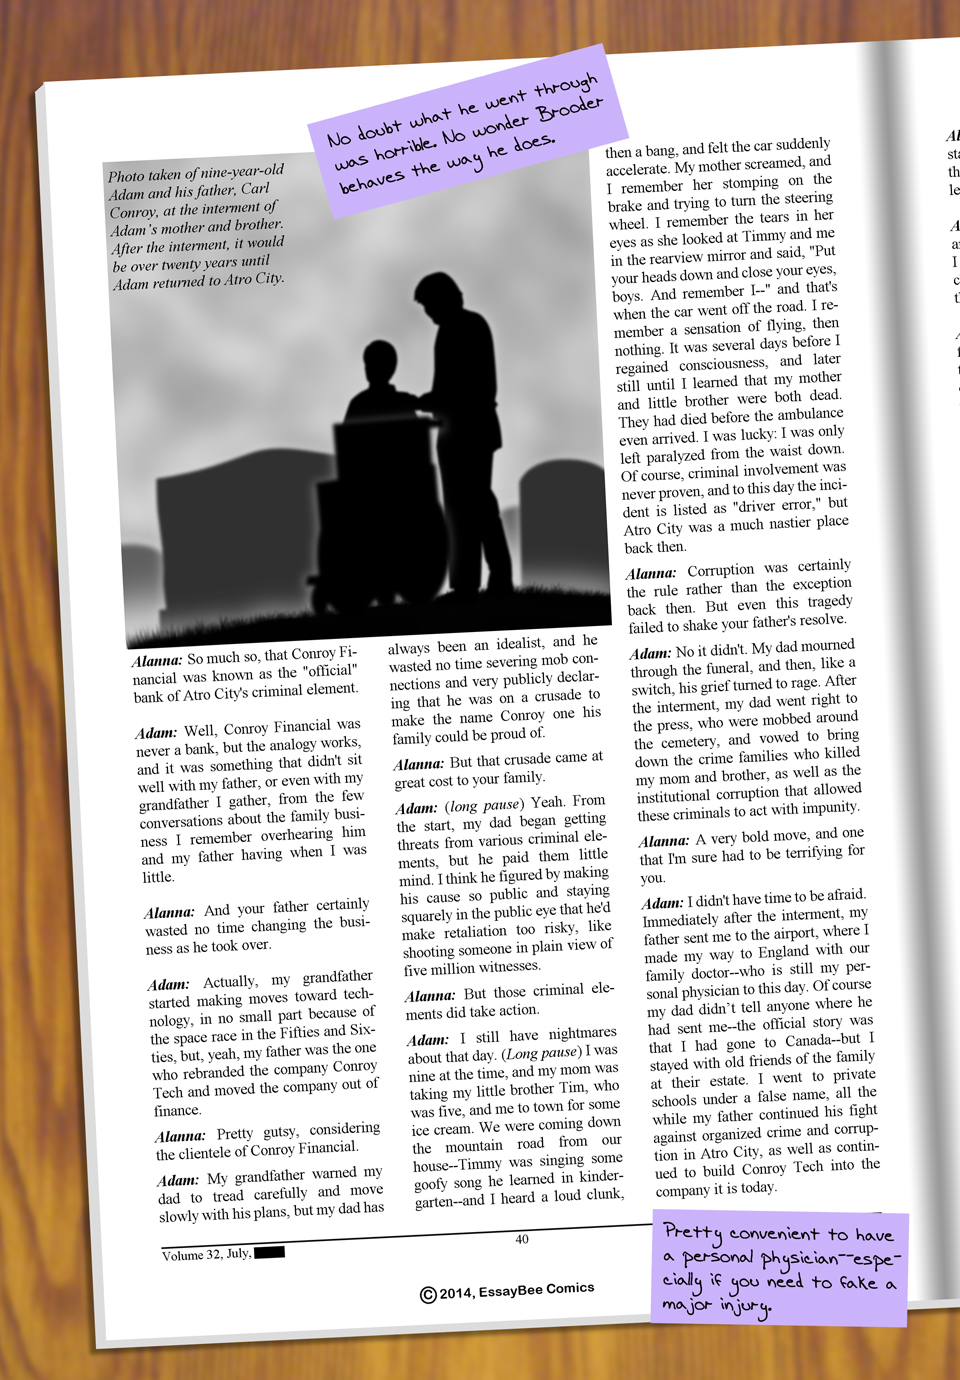 Interleude--Faces Magazine Interview 3 Page 3